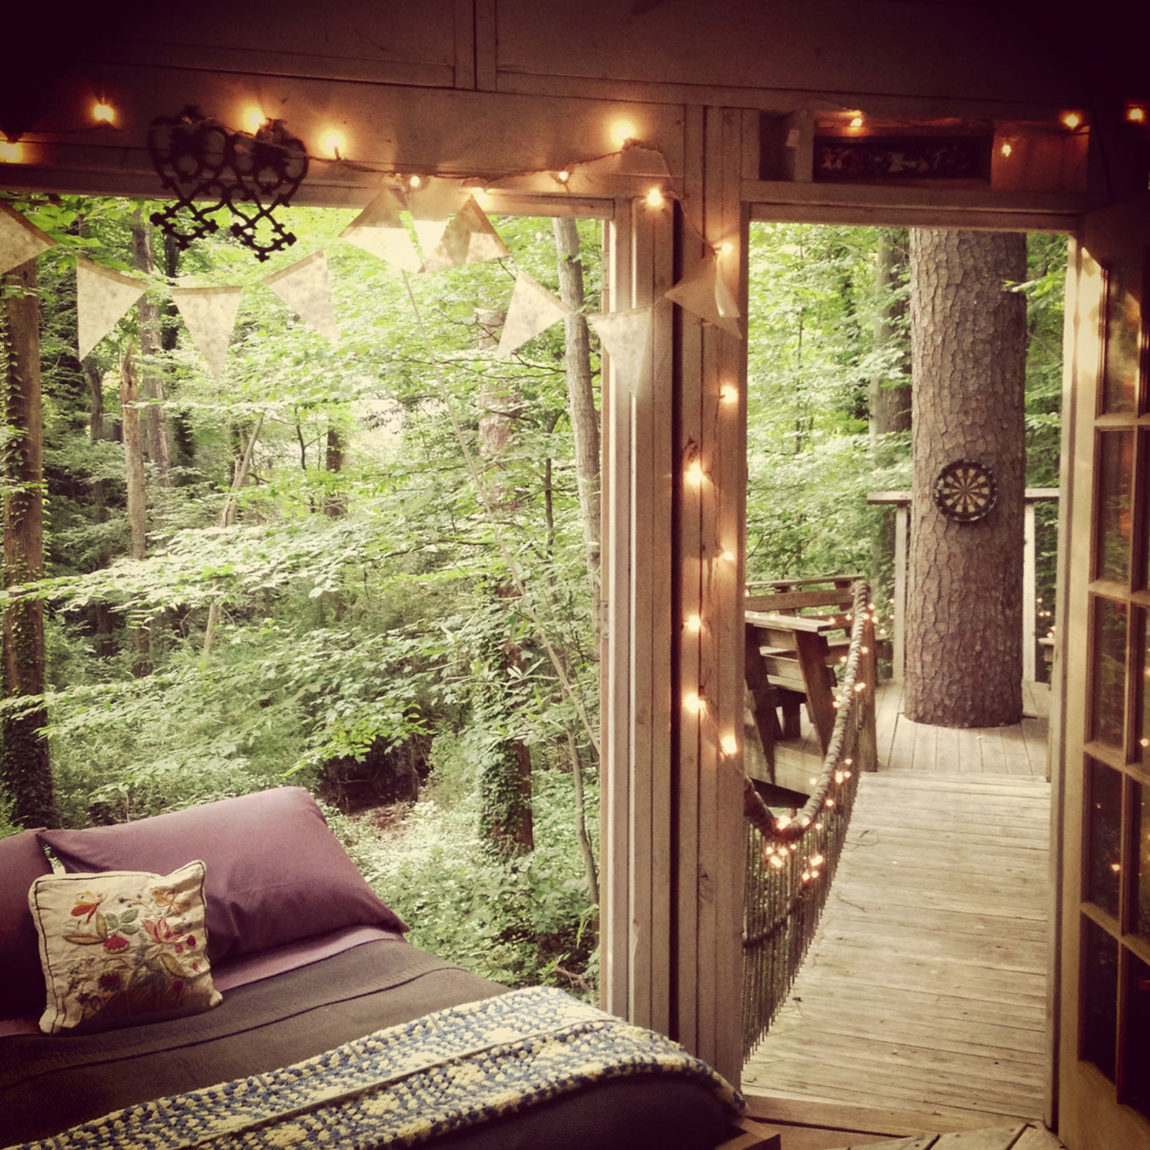 Secluded Intown Treehouse (11)